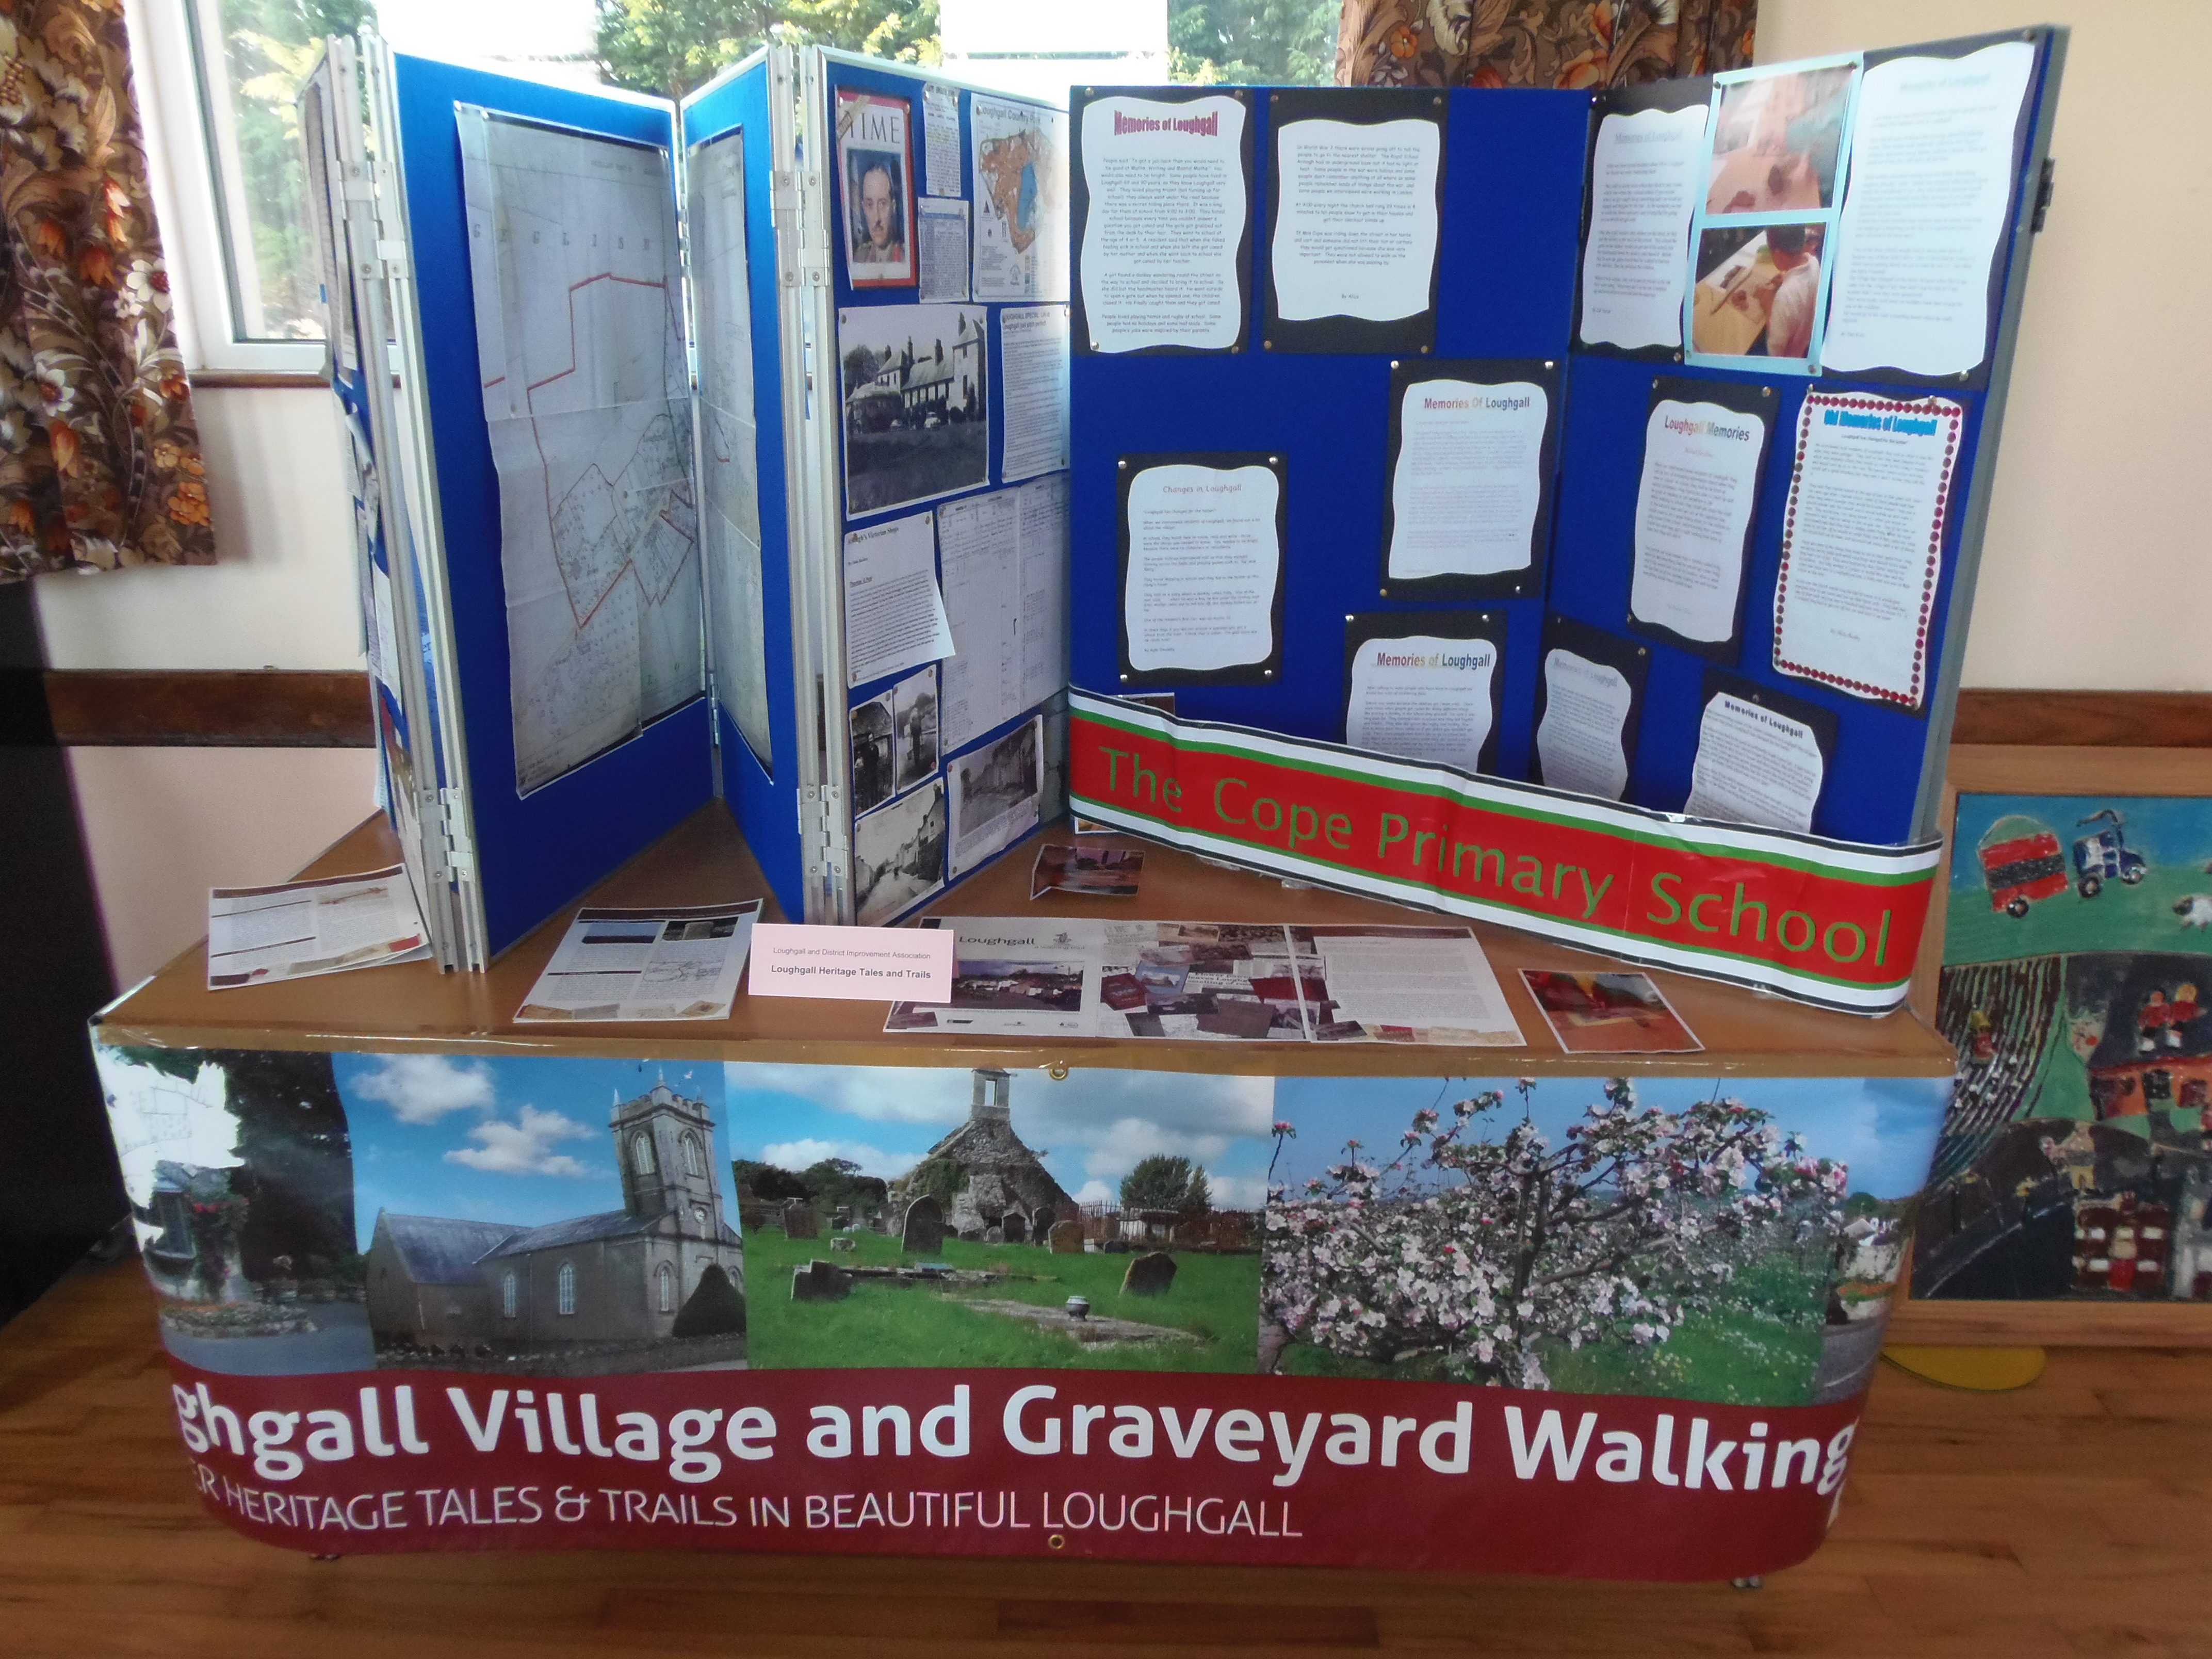 Loughgall Heritage Tails and Trails